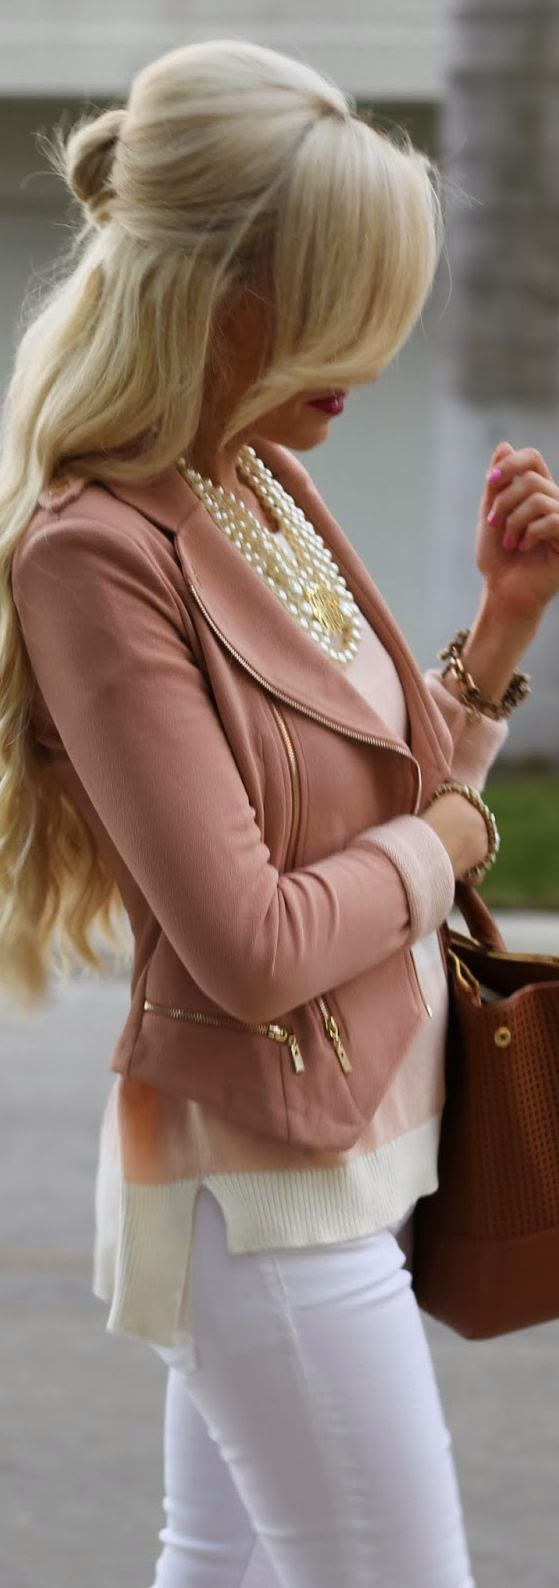 Top 5 Most Pretty Outfits